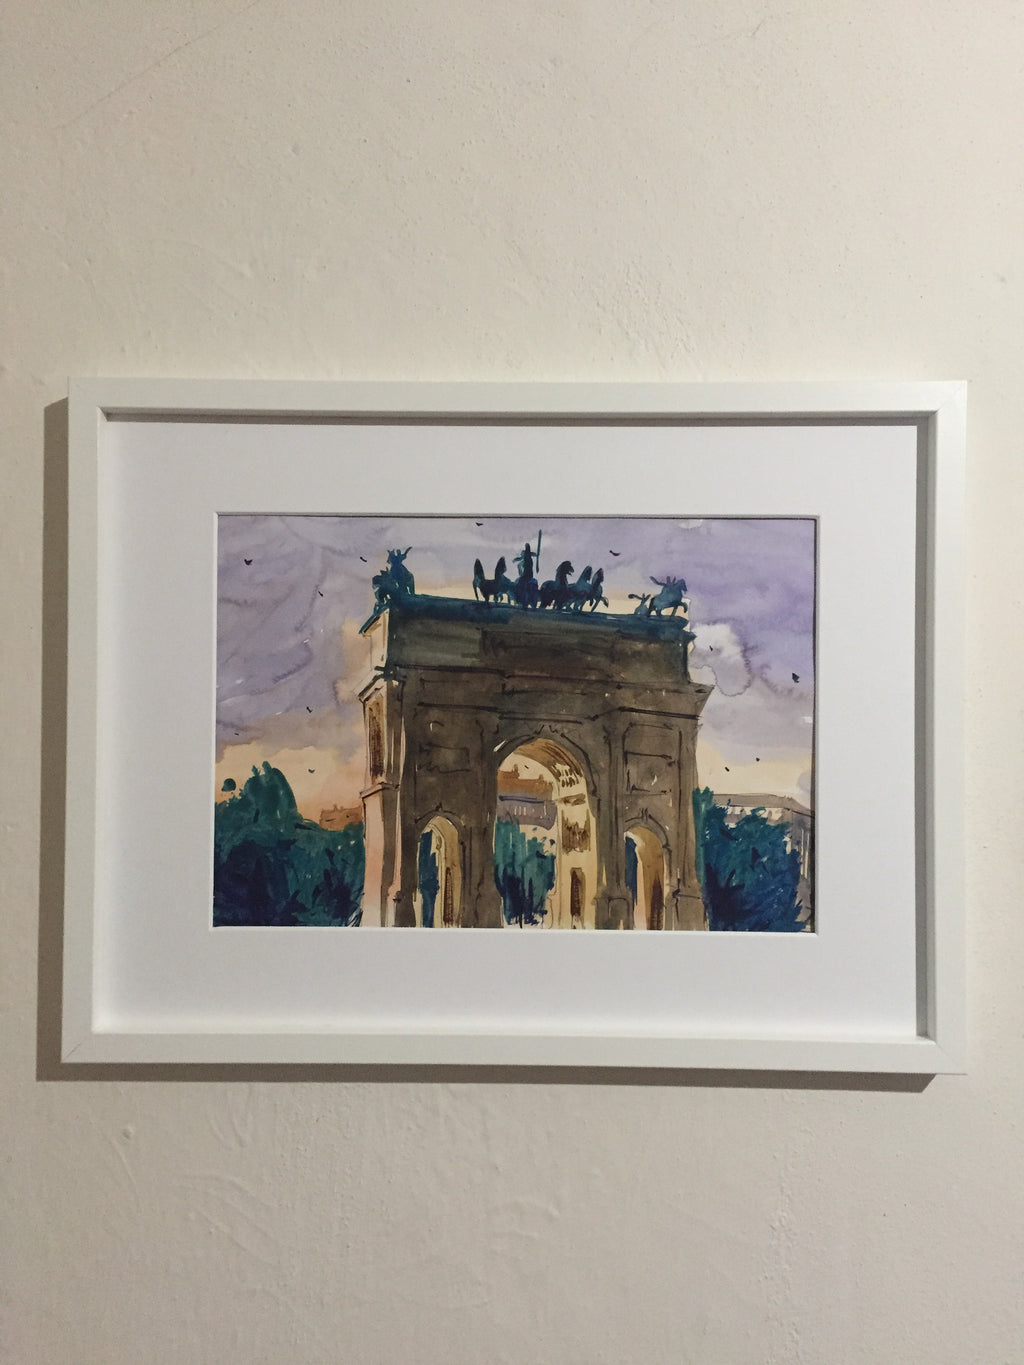 Milan | Watercolor Painting  | Landscape painting |  Watercolour | Original painting | Wall decor - Continuum Watercolors